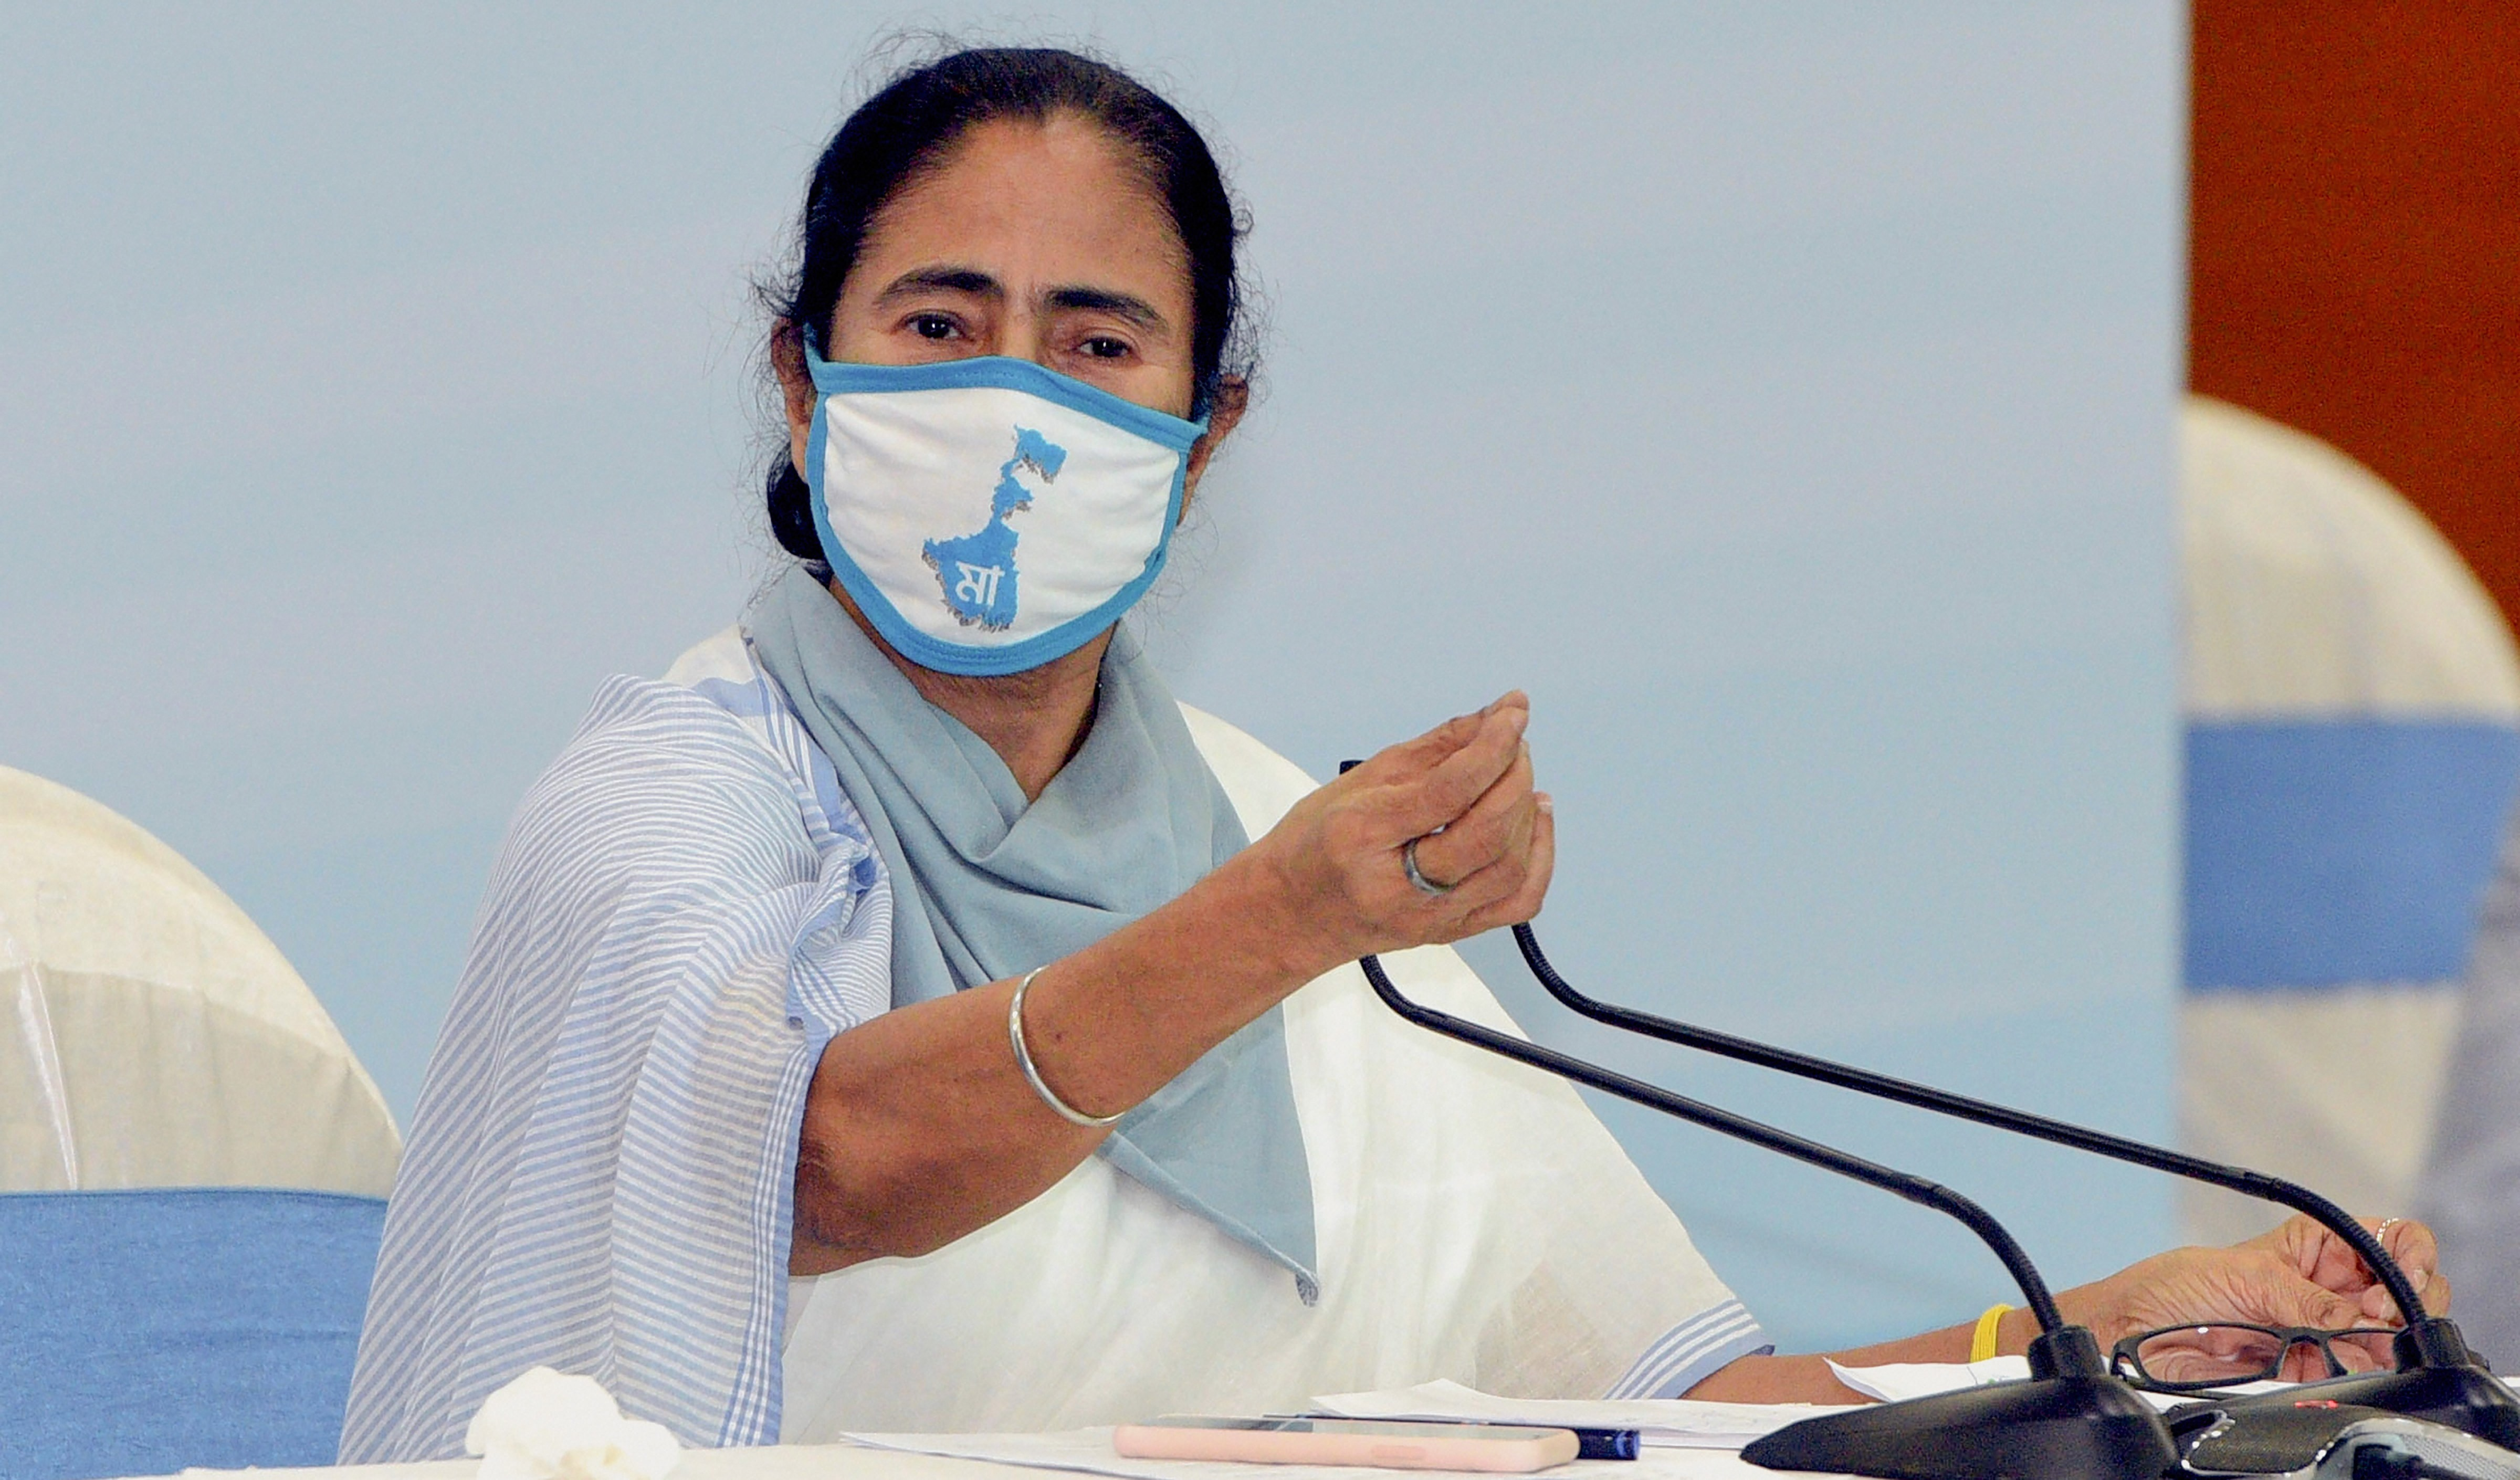 """Mamata Banerjee on June 6 warned her party workers against """"politicising relief work""""."""